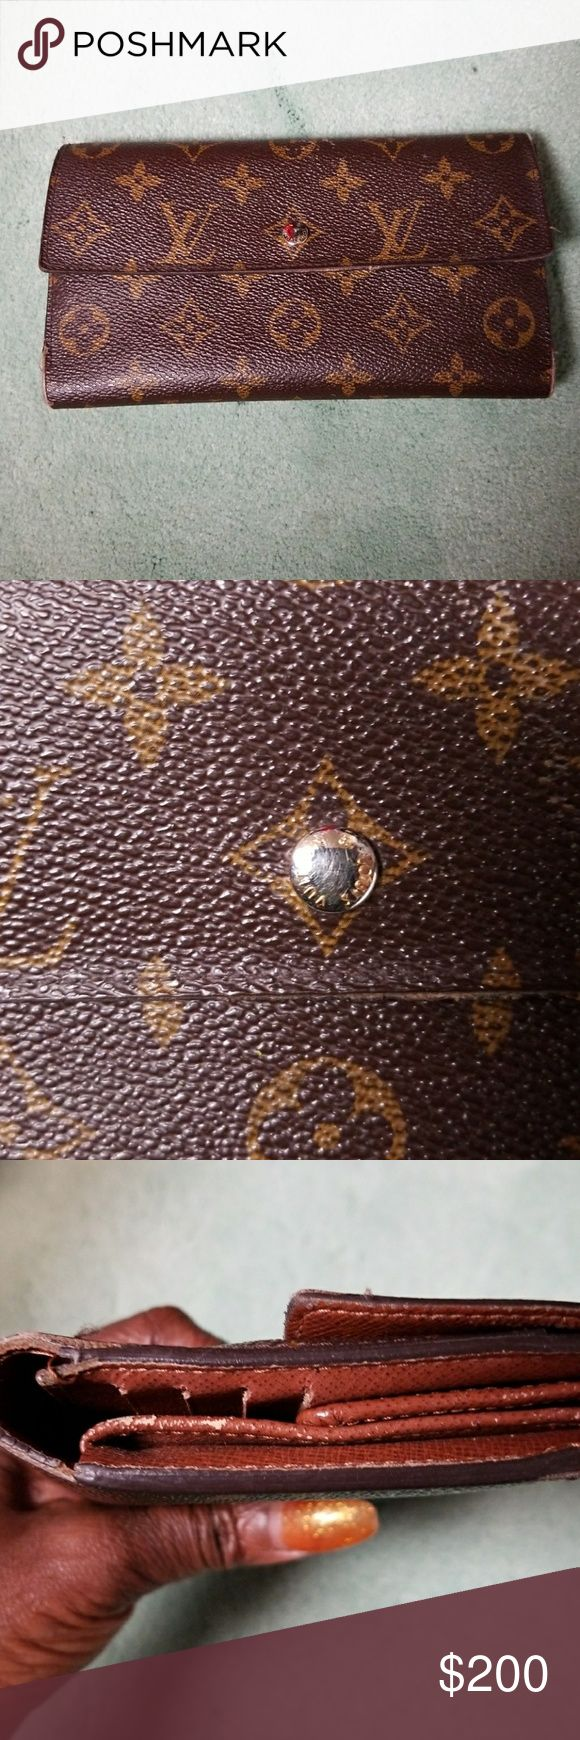 Authentic Sarah wallet Louis vuition wallet used but still has life yet,no tear just a little worn on corners,date code and snap closure works fine tv higher Louis Vuitton Bags Wallets